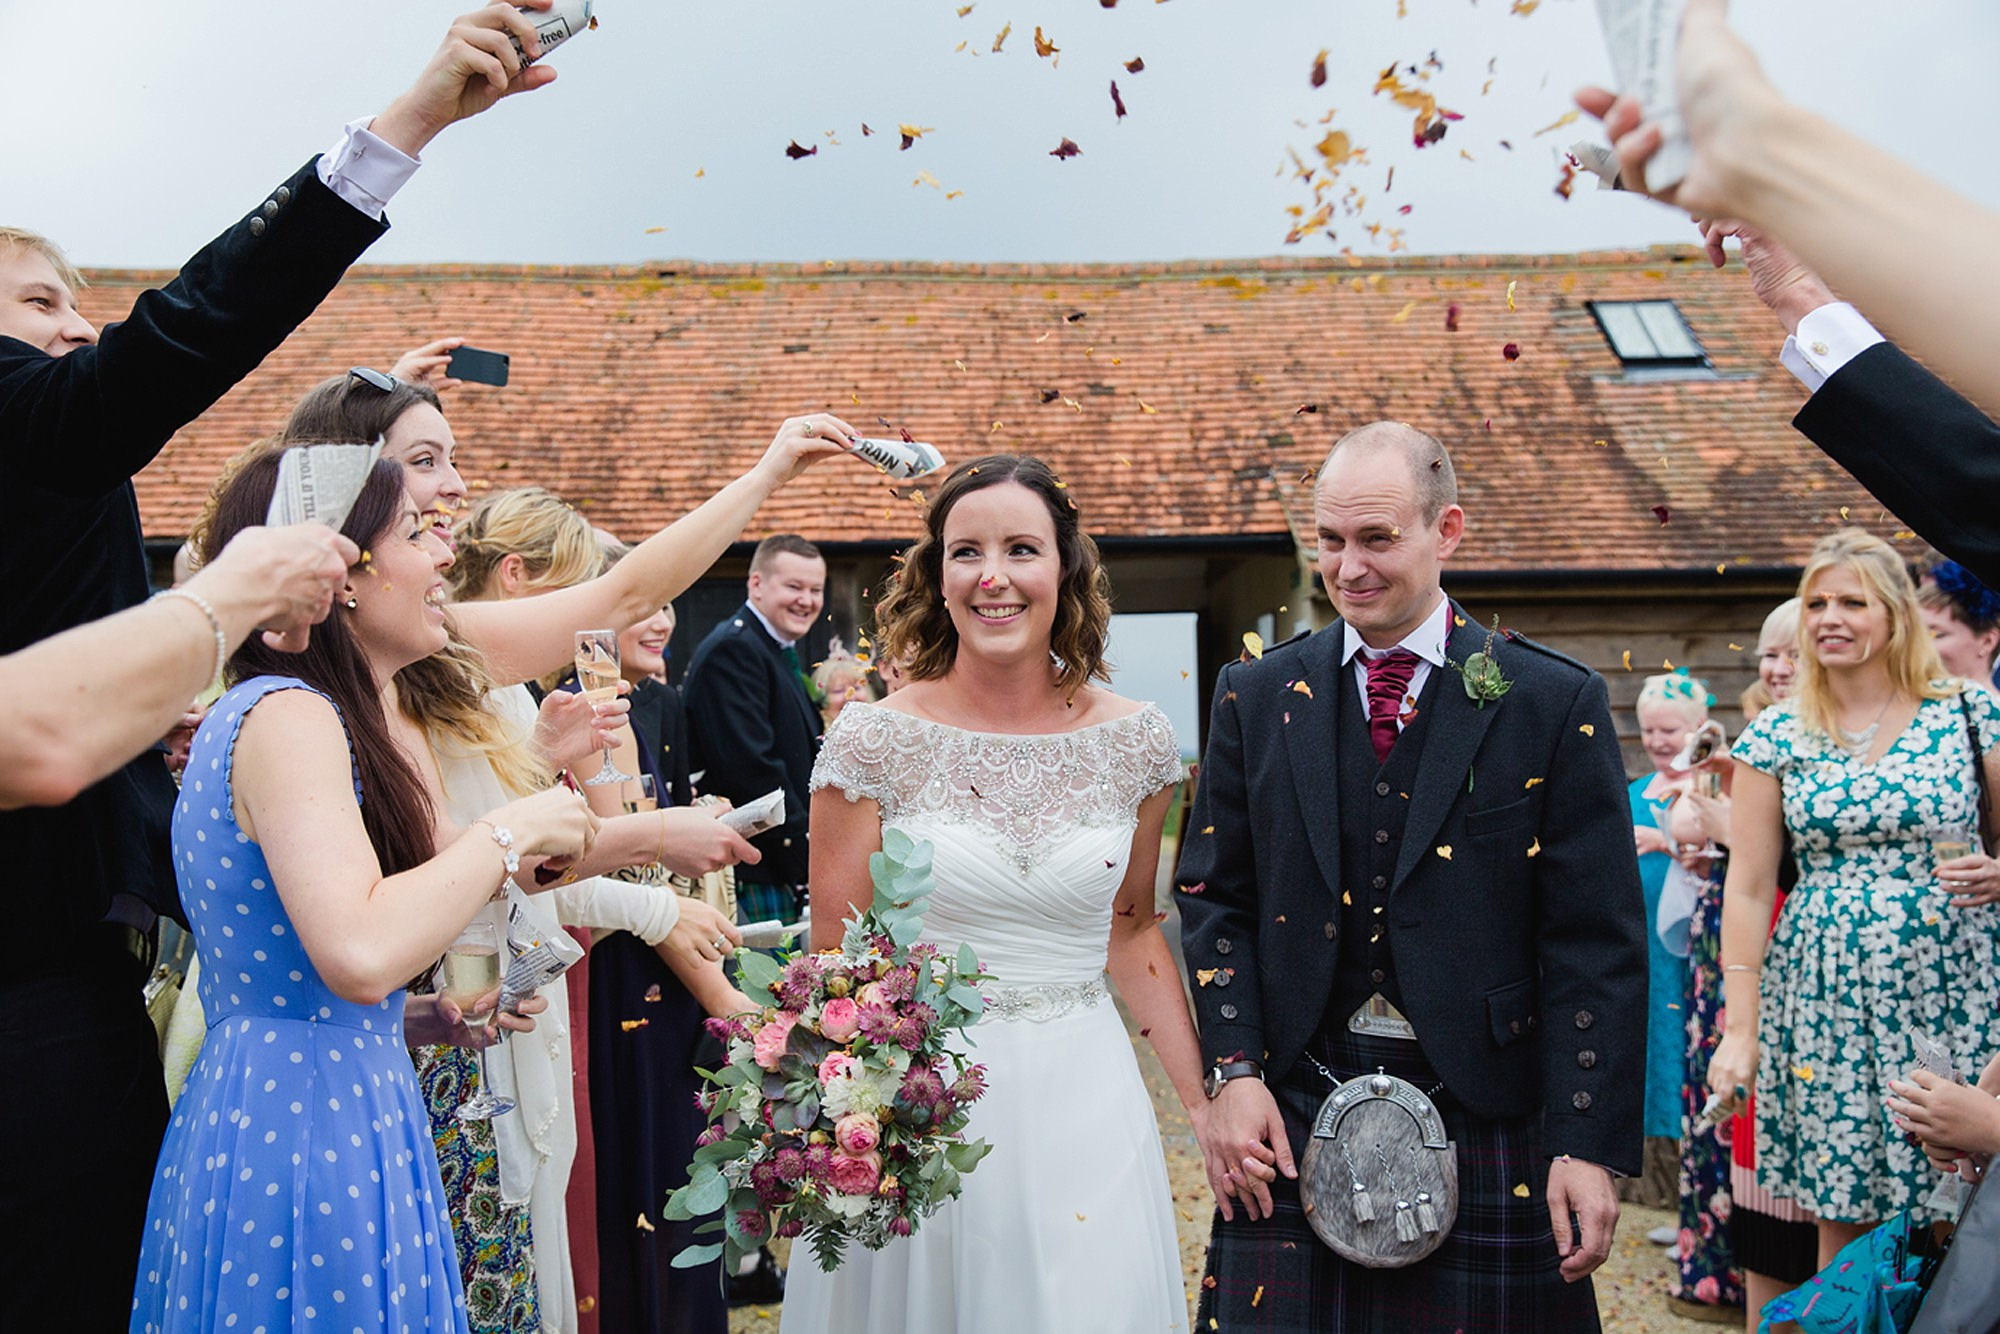 outdoor humanist wedding photography confetti close up